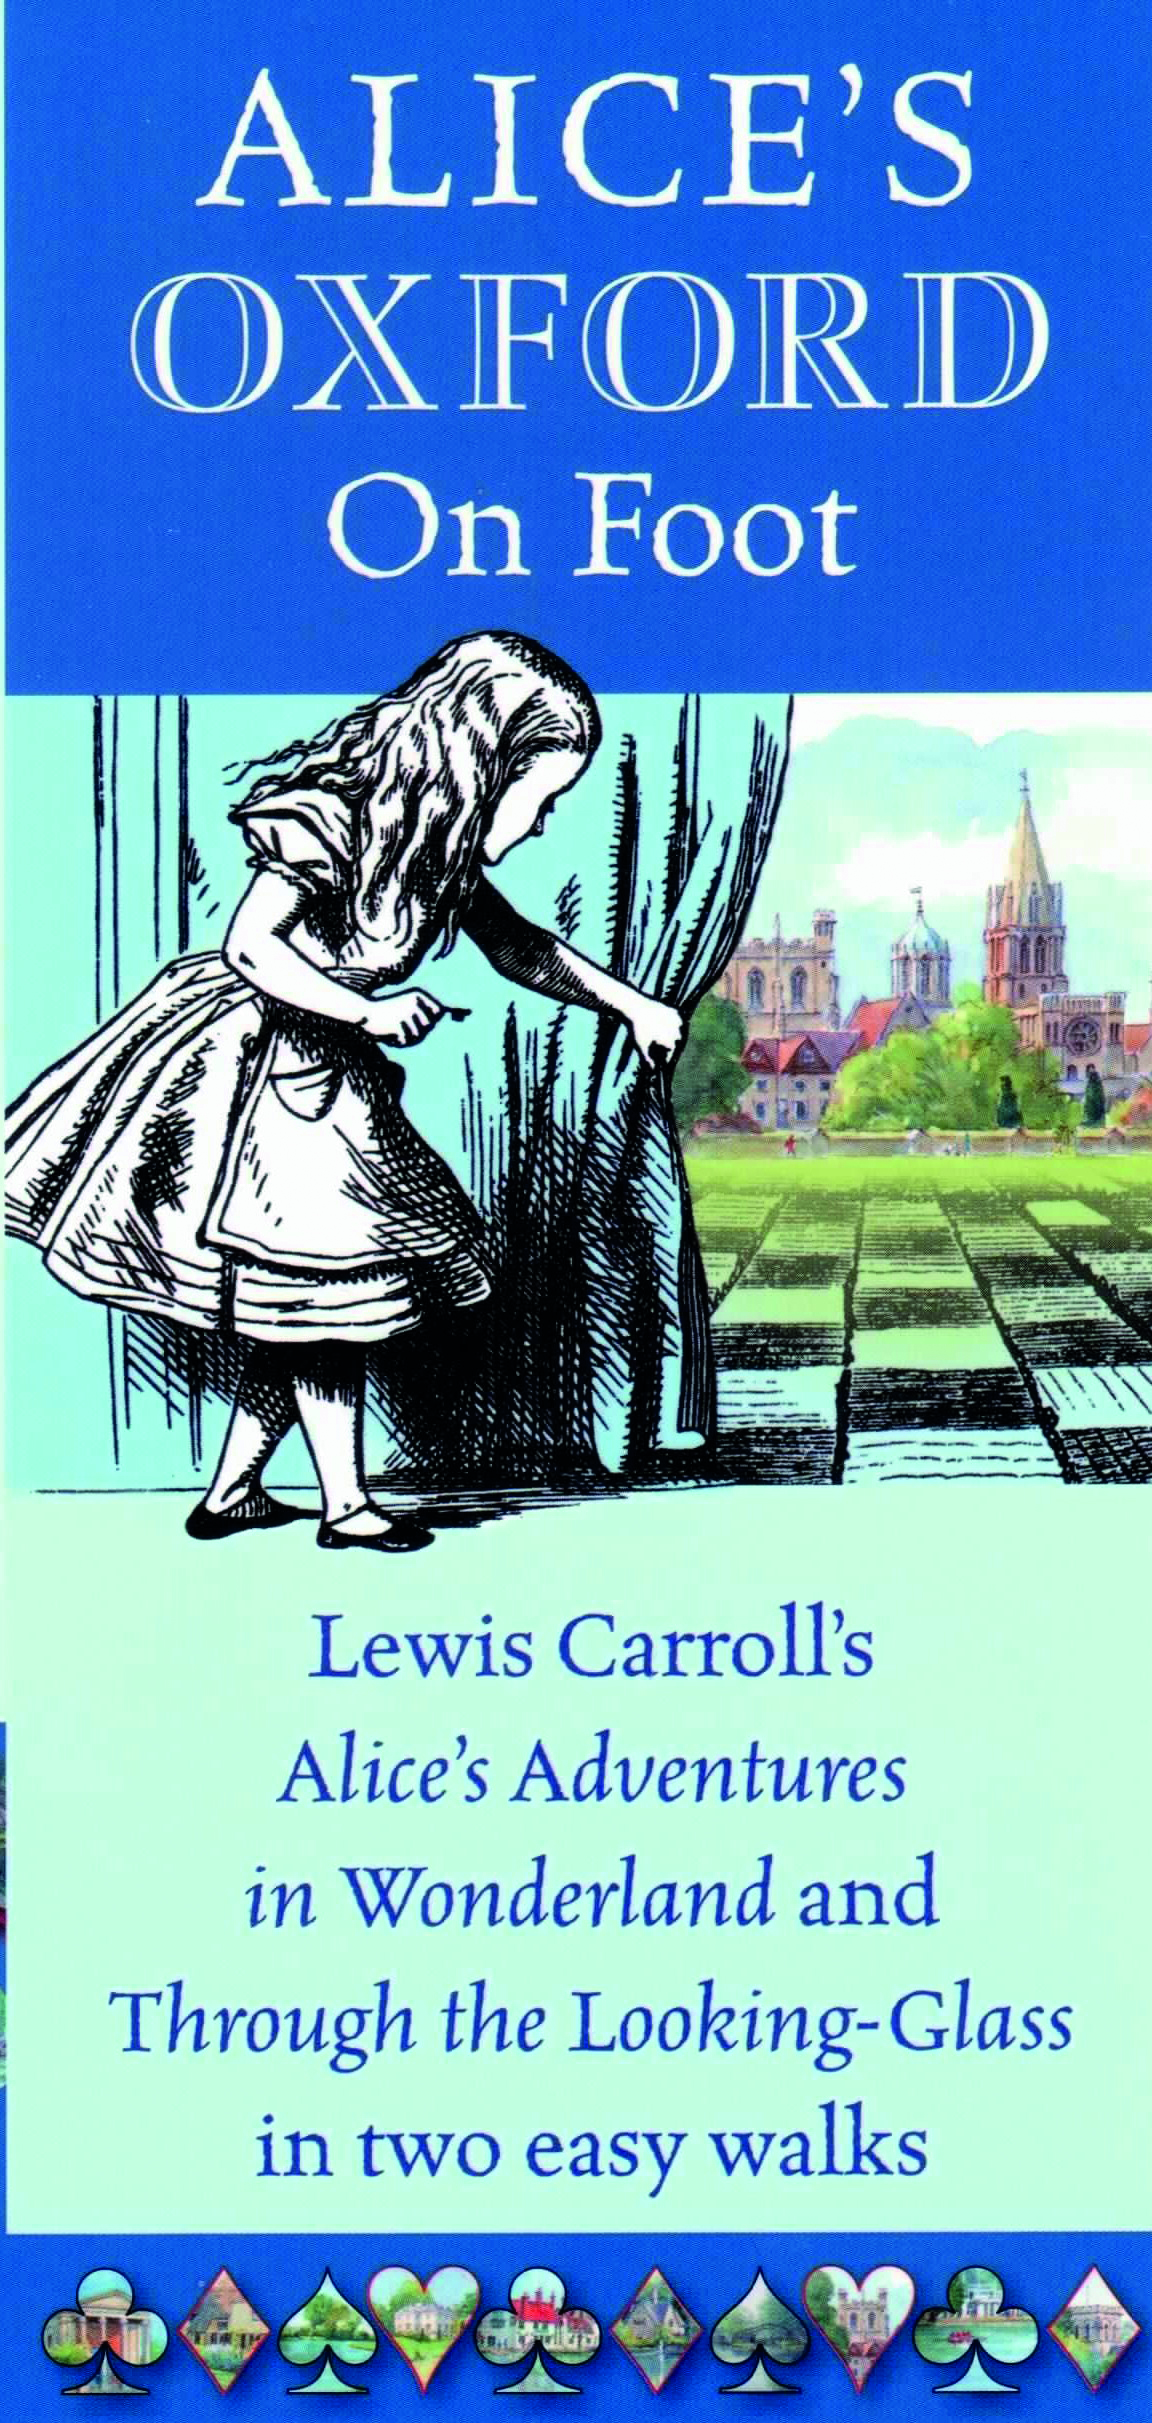 alices-oxford-on-foot-front-cover